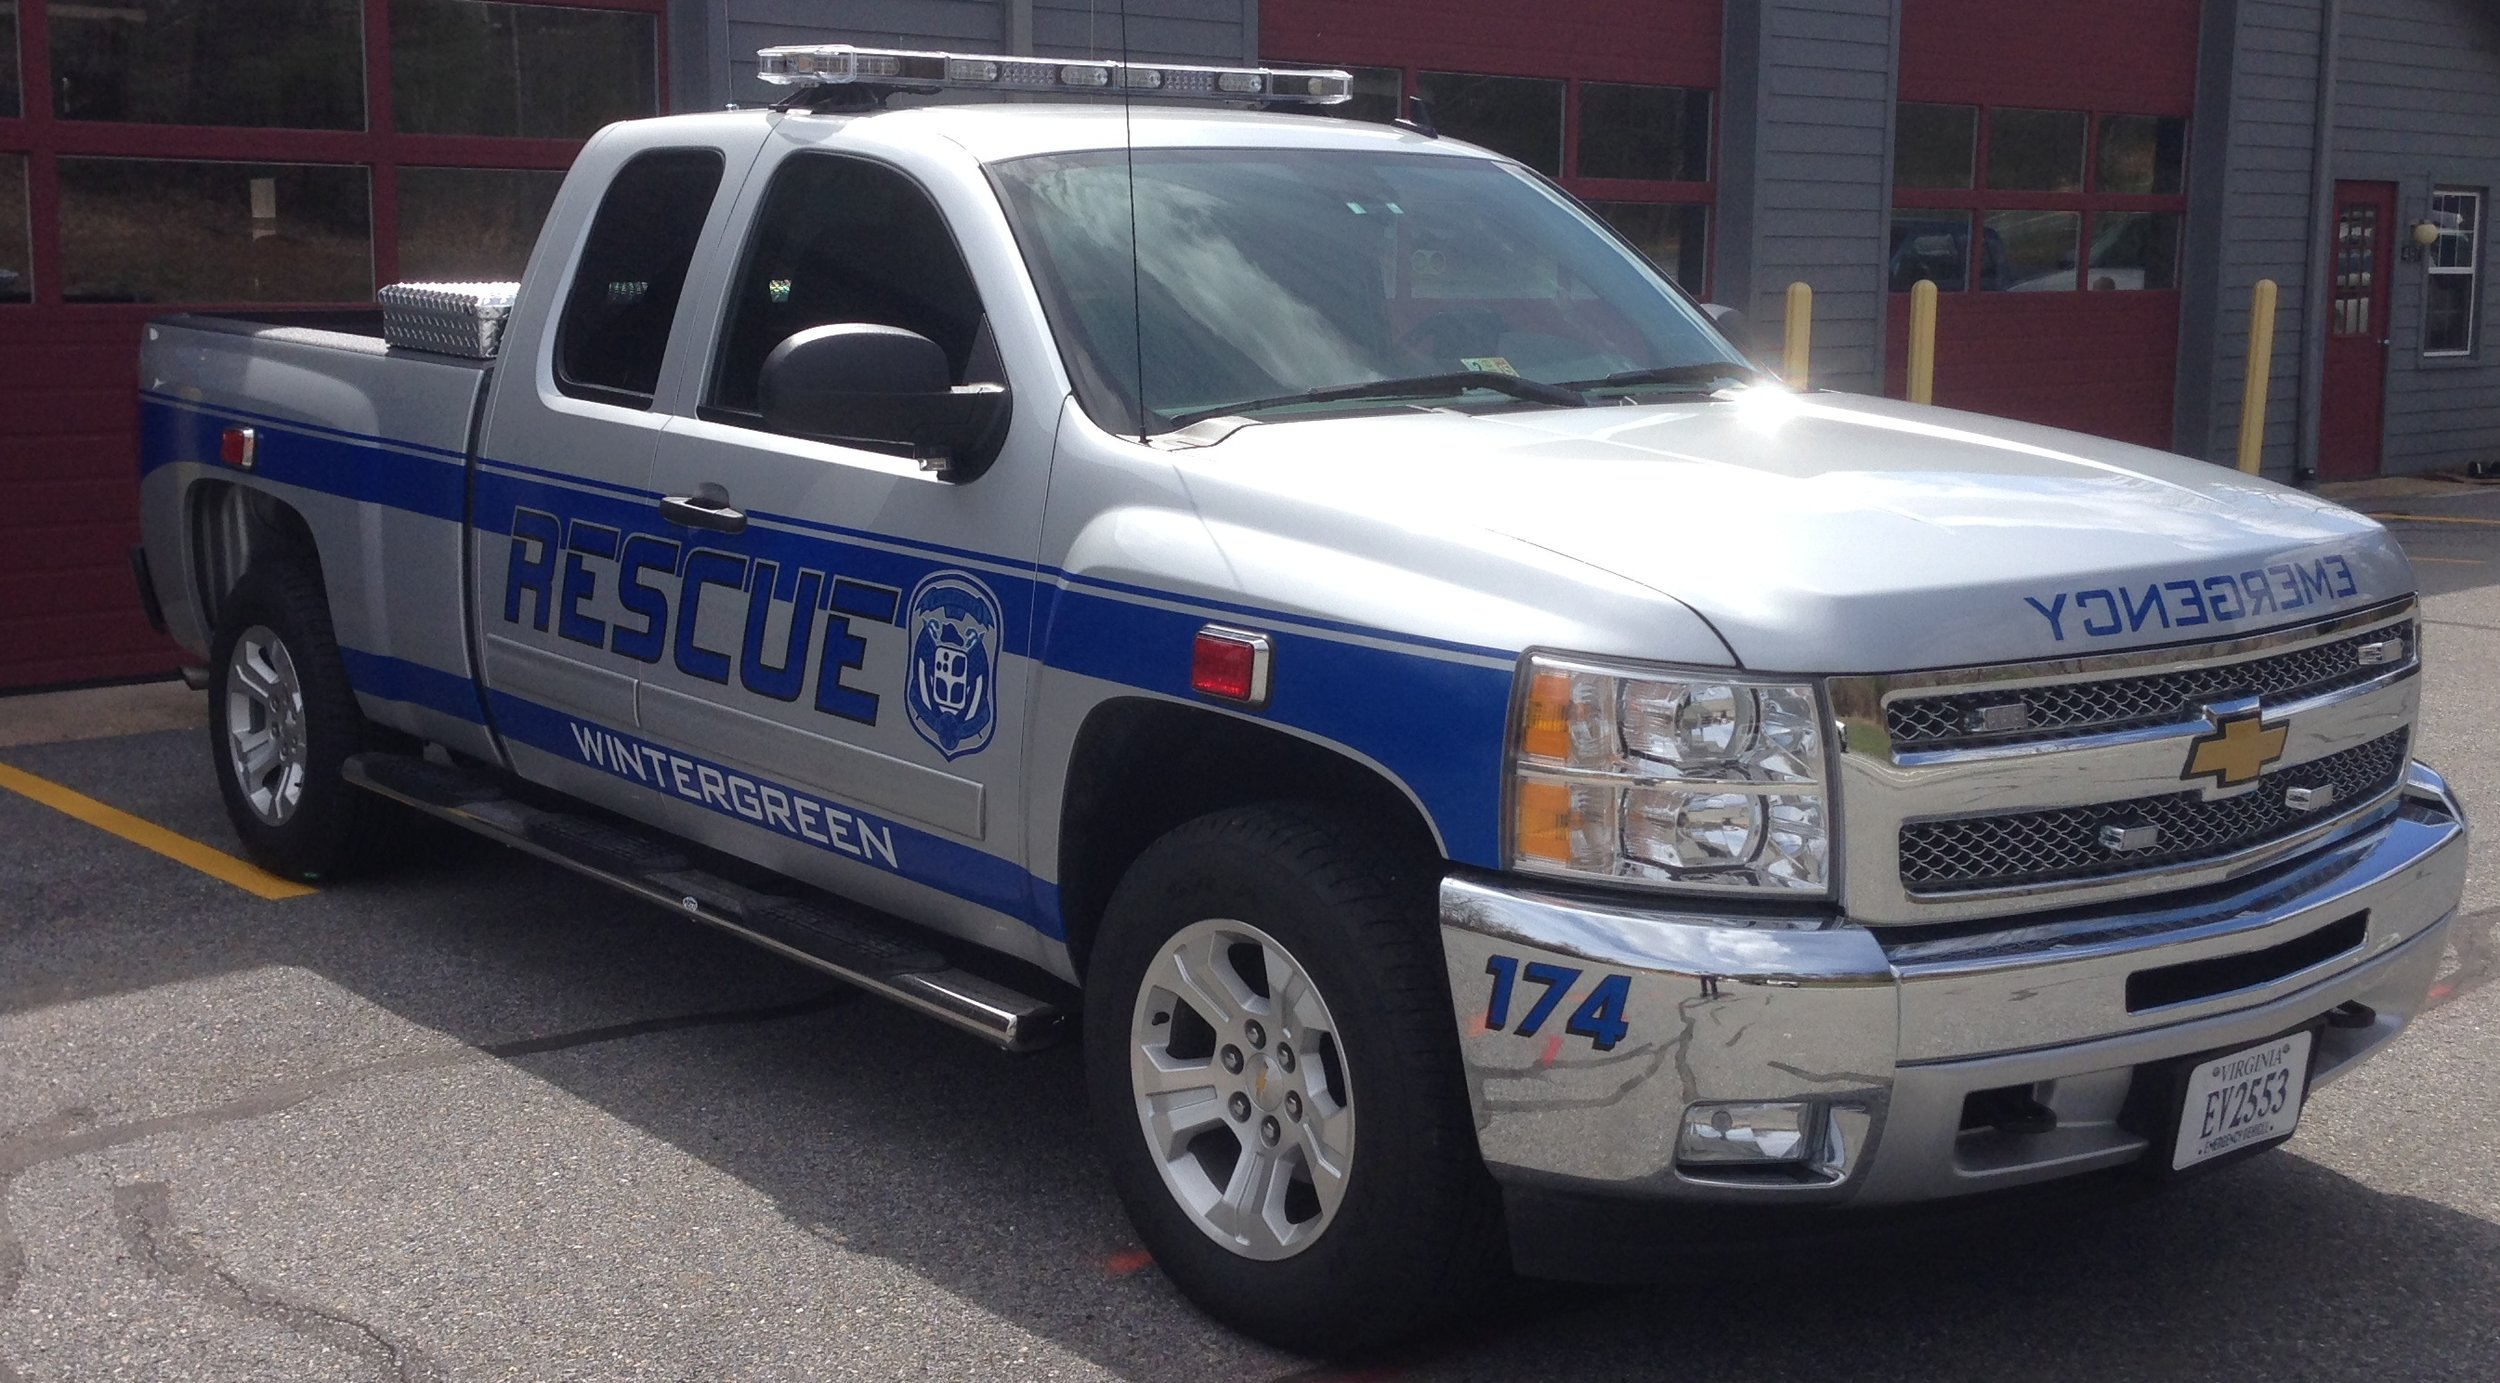 The new Response 174 is a half-ton extended cab Chevy Silverado. 60% of the rear seat was removed to make room for a full compliment of ALS gear. This vehicle, purchased in April 2014, will become the primary ALS response vehicle for Wintergreen Station 2. 174 is now far more capable of pulling the ATV trailer, the Special Events trailer,and the Forest Fire Support Trailer should a need arise. The truck, as well as all of the items we purchased to outfit it as an emergency vehicle were Made In America.